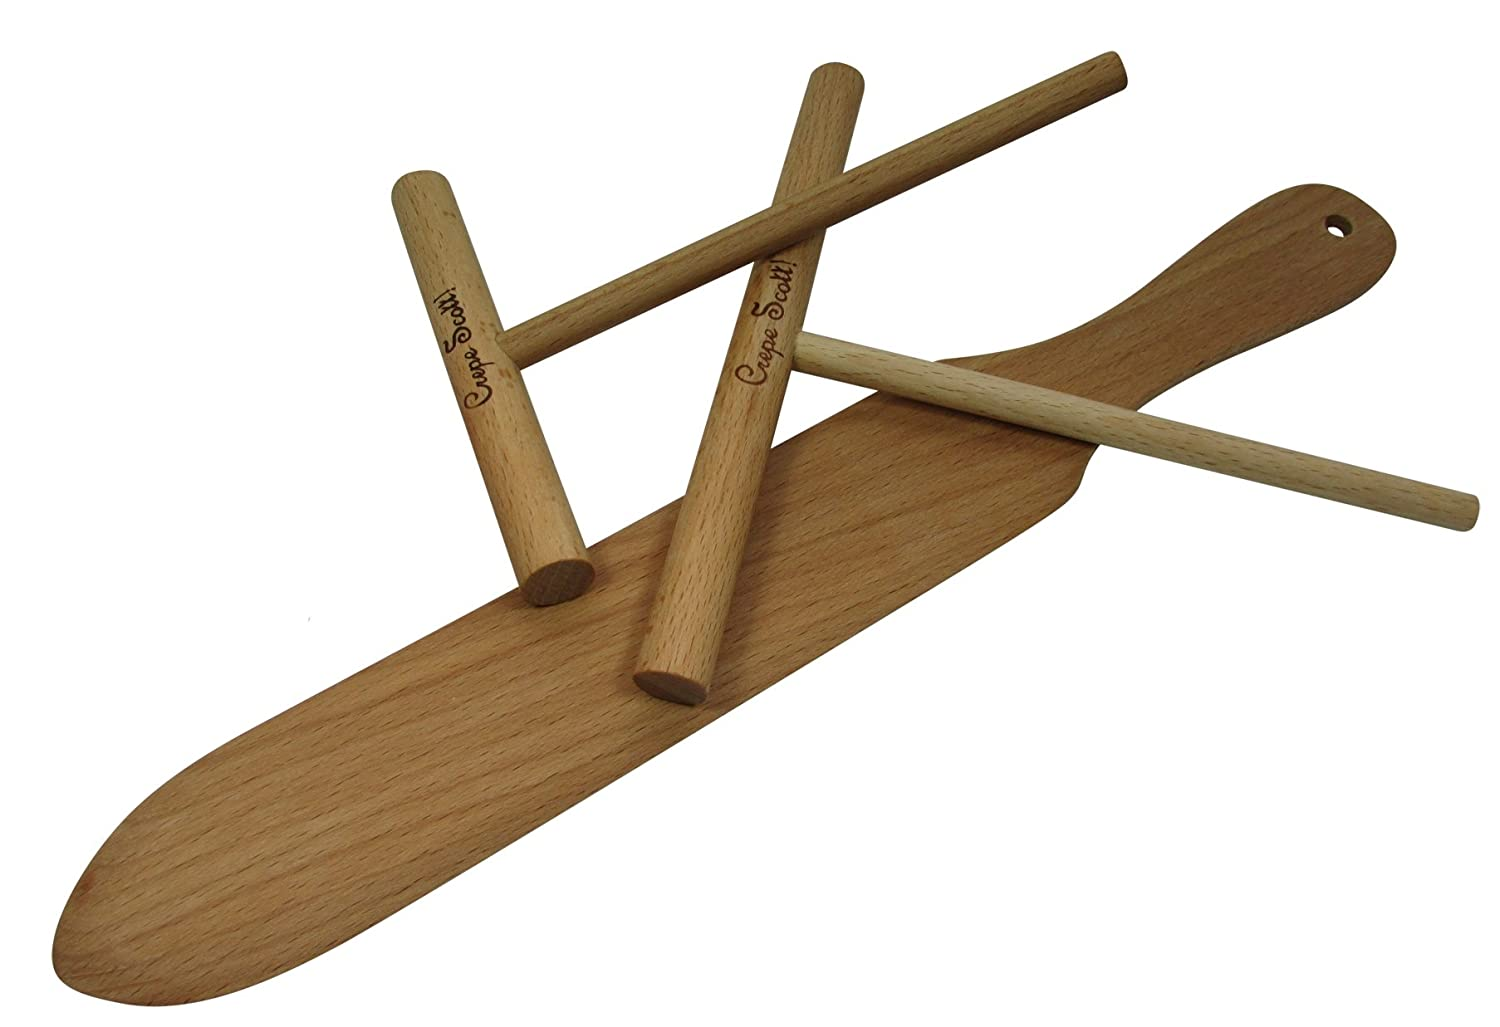 Crepe and Pancake Making Tool Set. 3 Piece Baking Set Includes One 14 Inch Turner, One 7 Inch and One 5 Inch Batter Spreader. Made of Beech Wood and Pre-Seasoned with Mineral Oil. By Crepe Scott Crepe Scott!